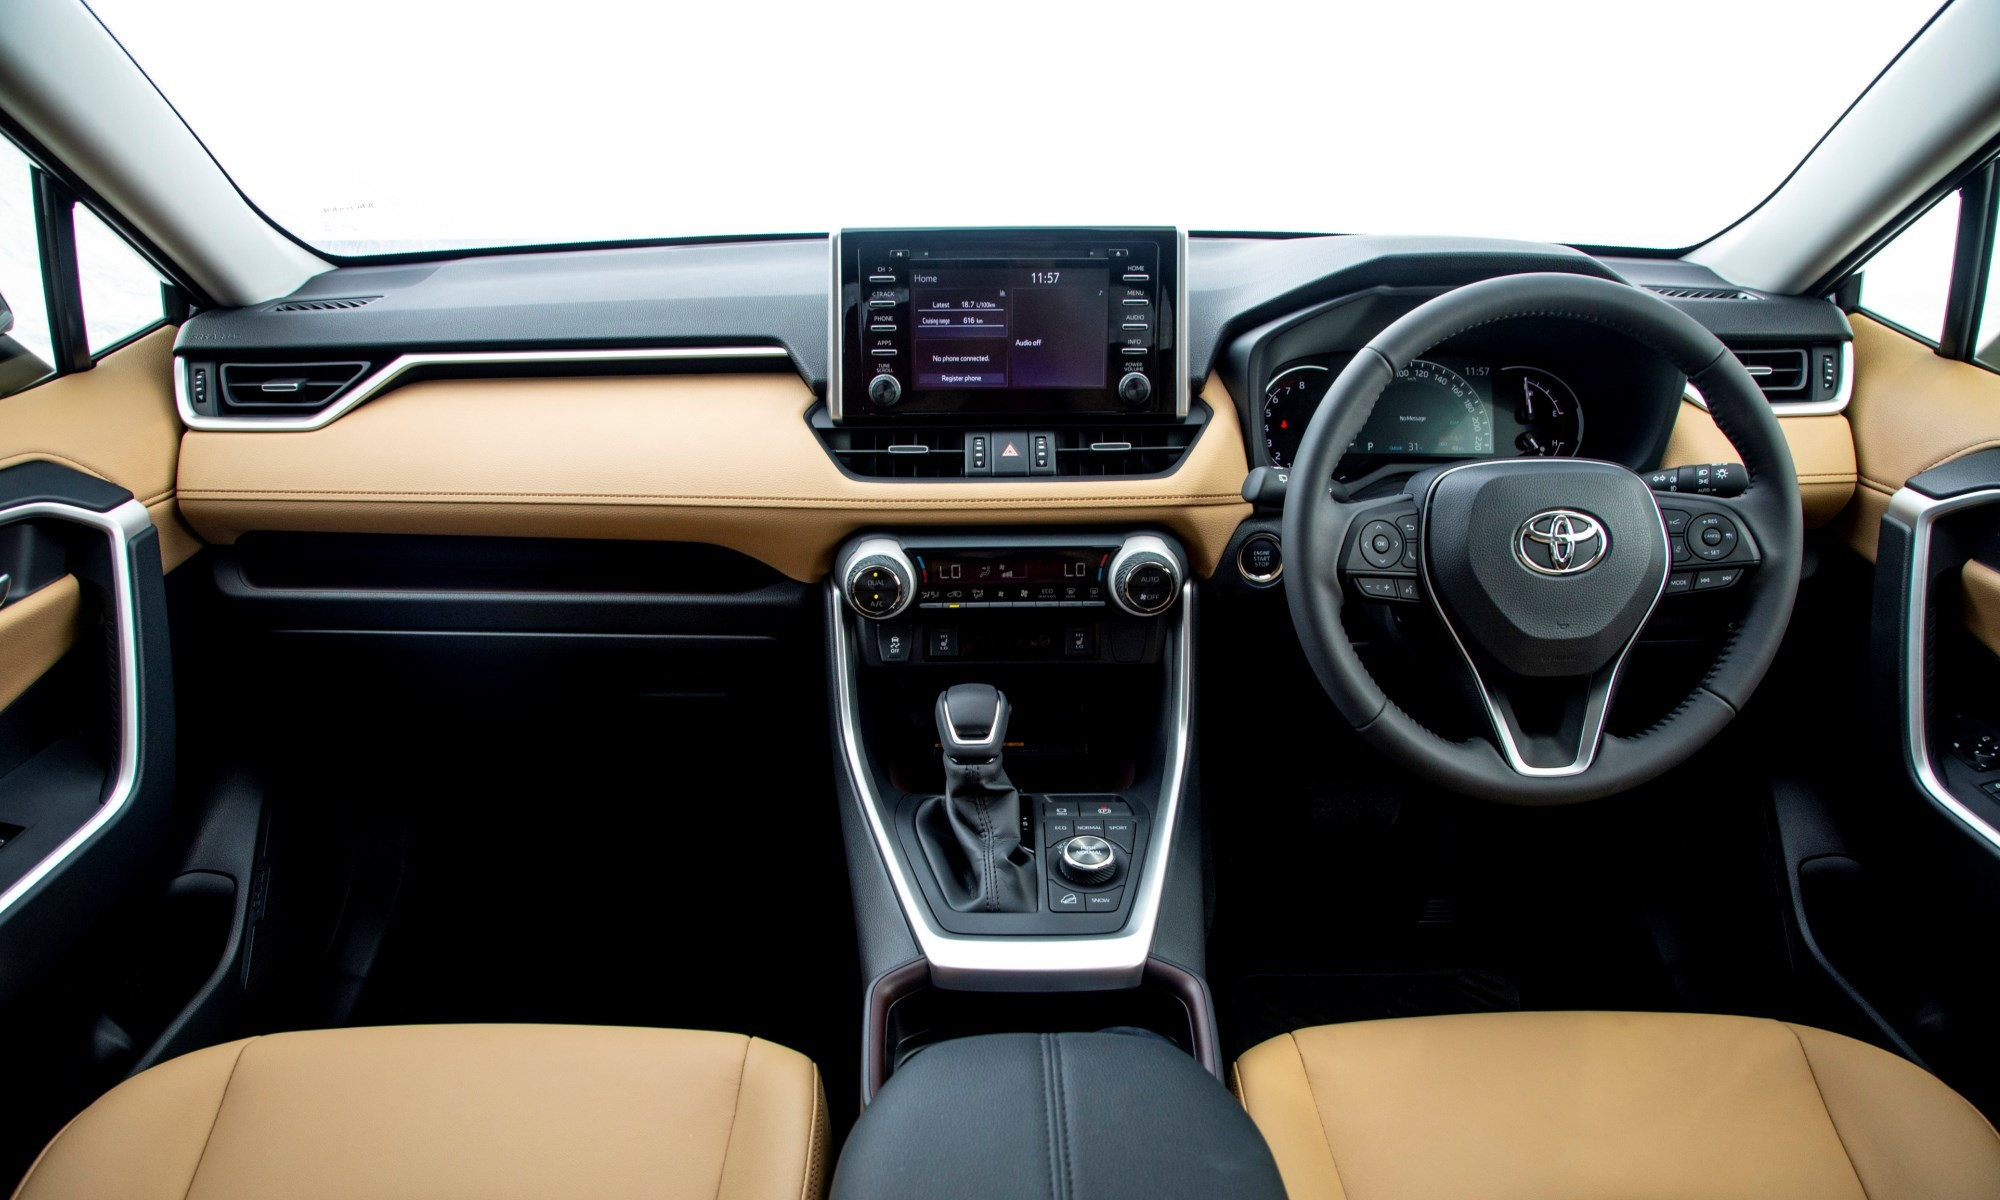 New Toyota RAV4 interior